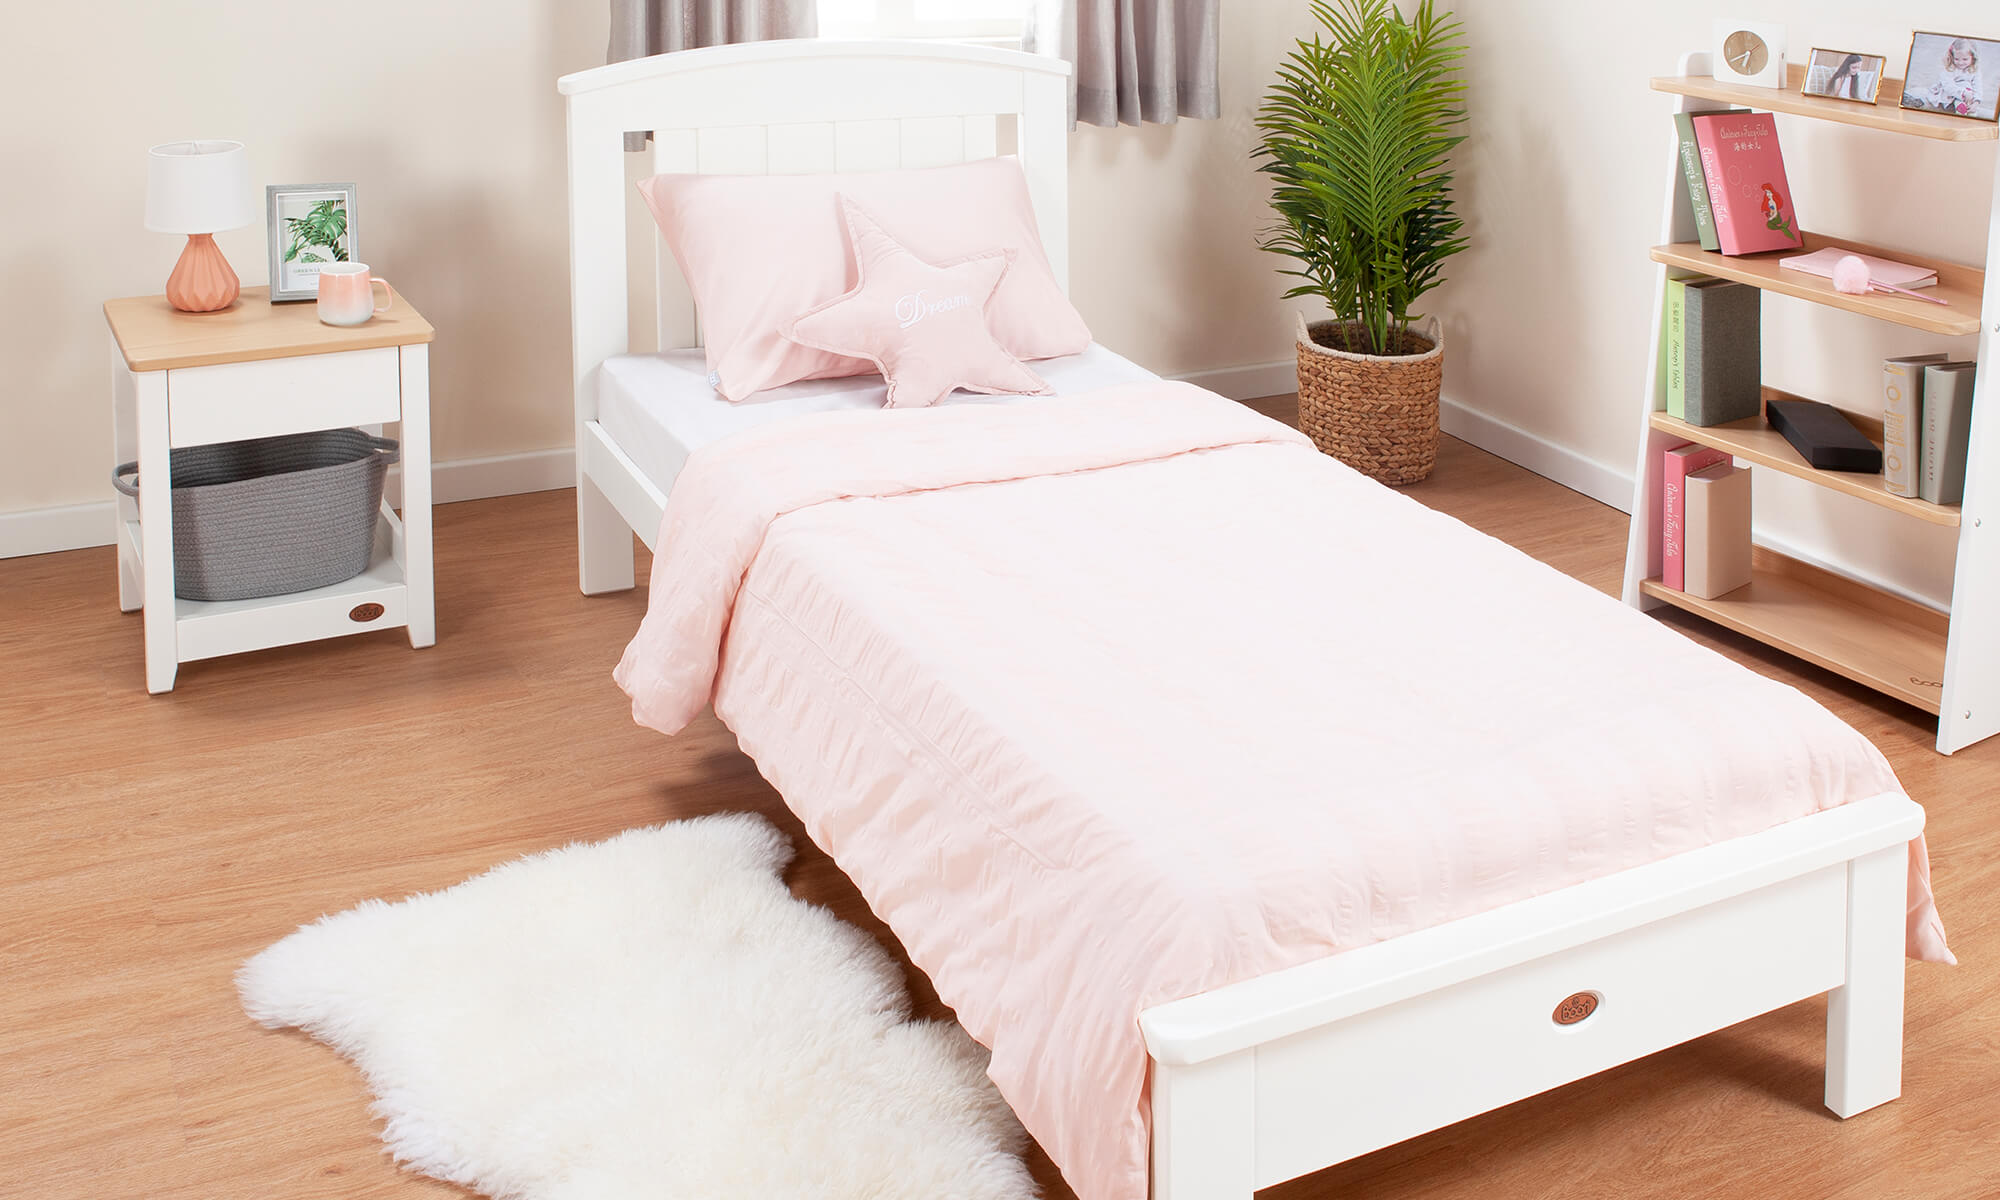 Product_Page_Lifestyles_1000_x_600_Casa_Single_Bed_White__2x